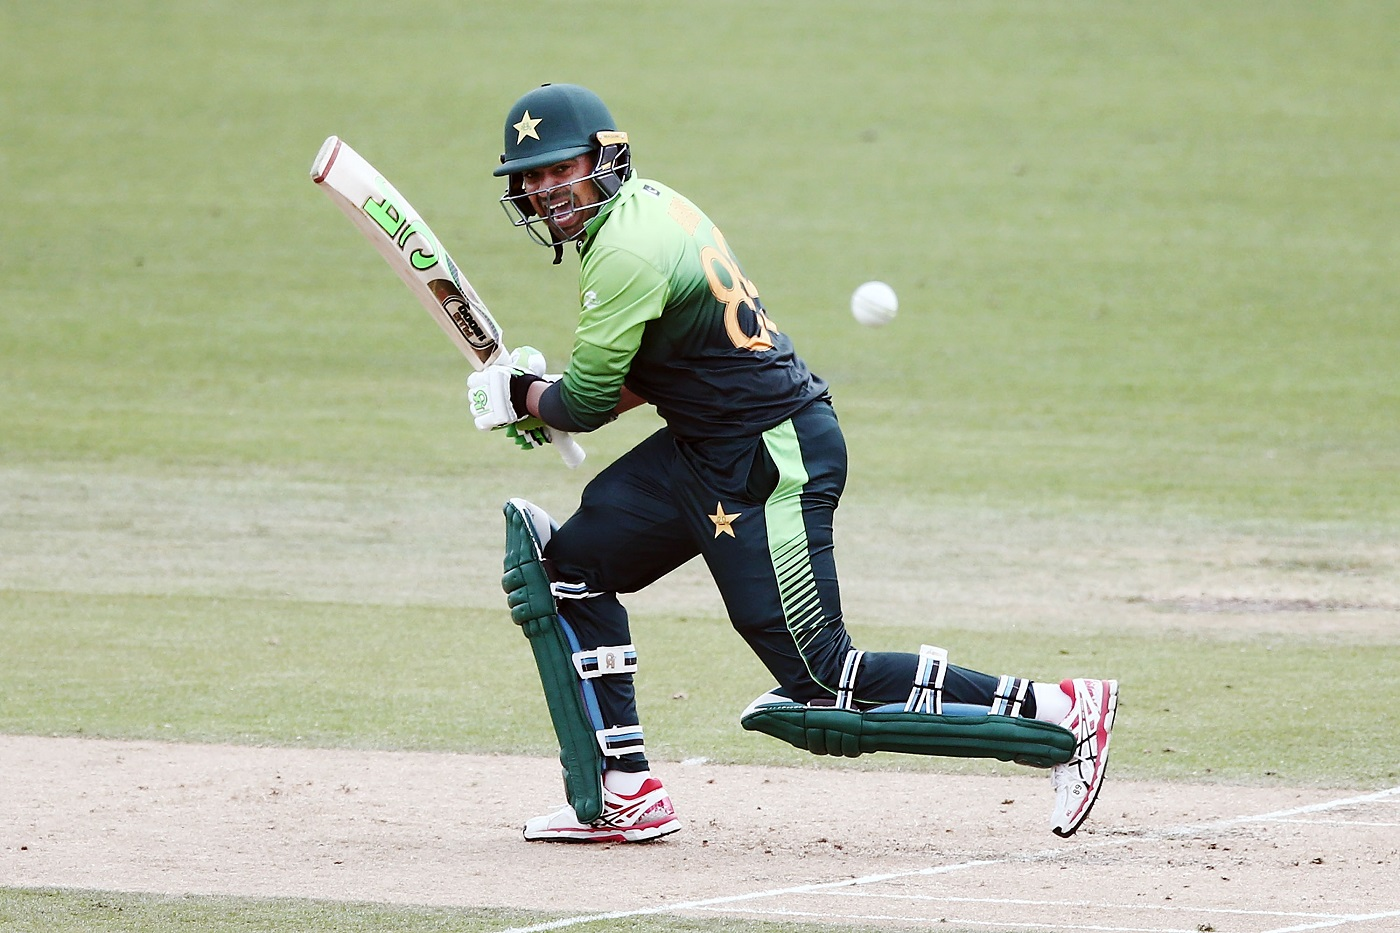 Haris Sohail returns home early from Zimbabwe due to daughter's illness